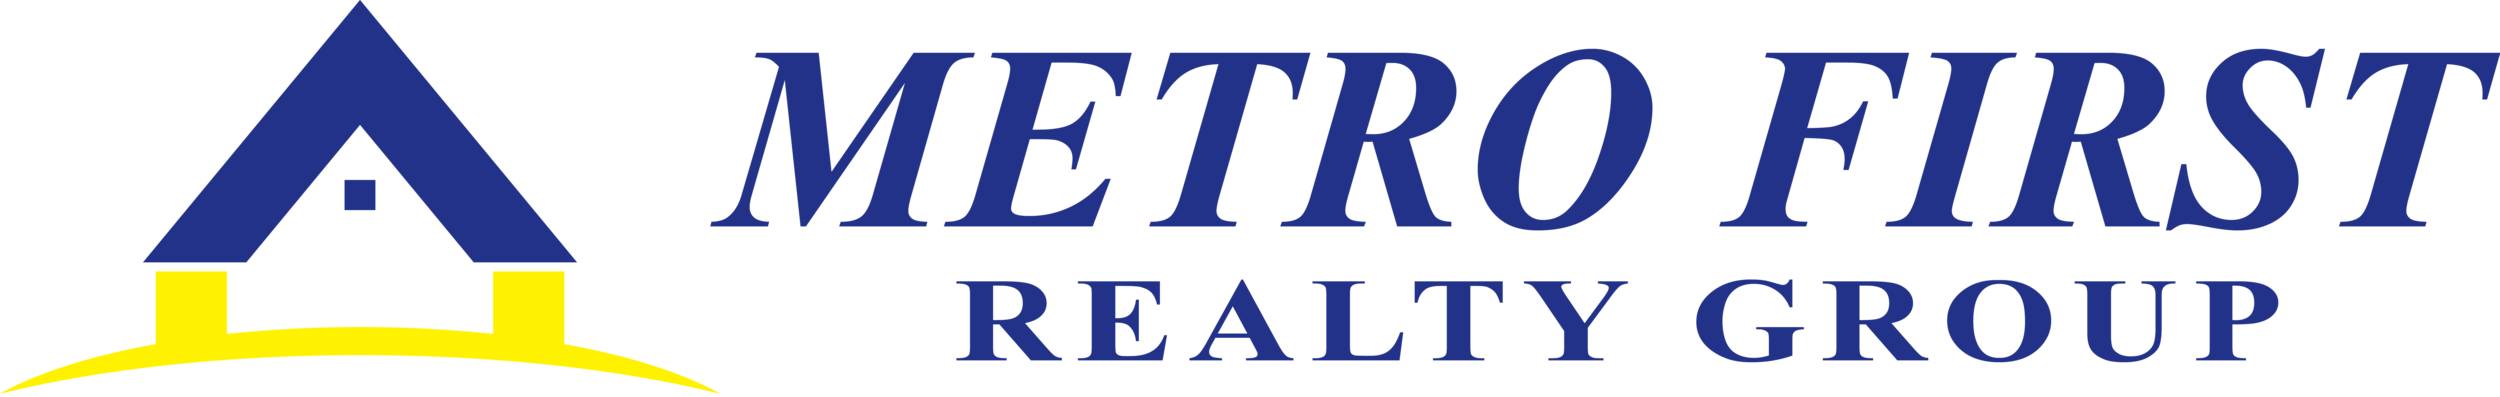 Metro First Realty Group Logo Linear Blue & Yellow High.png